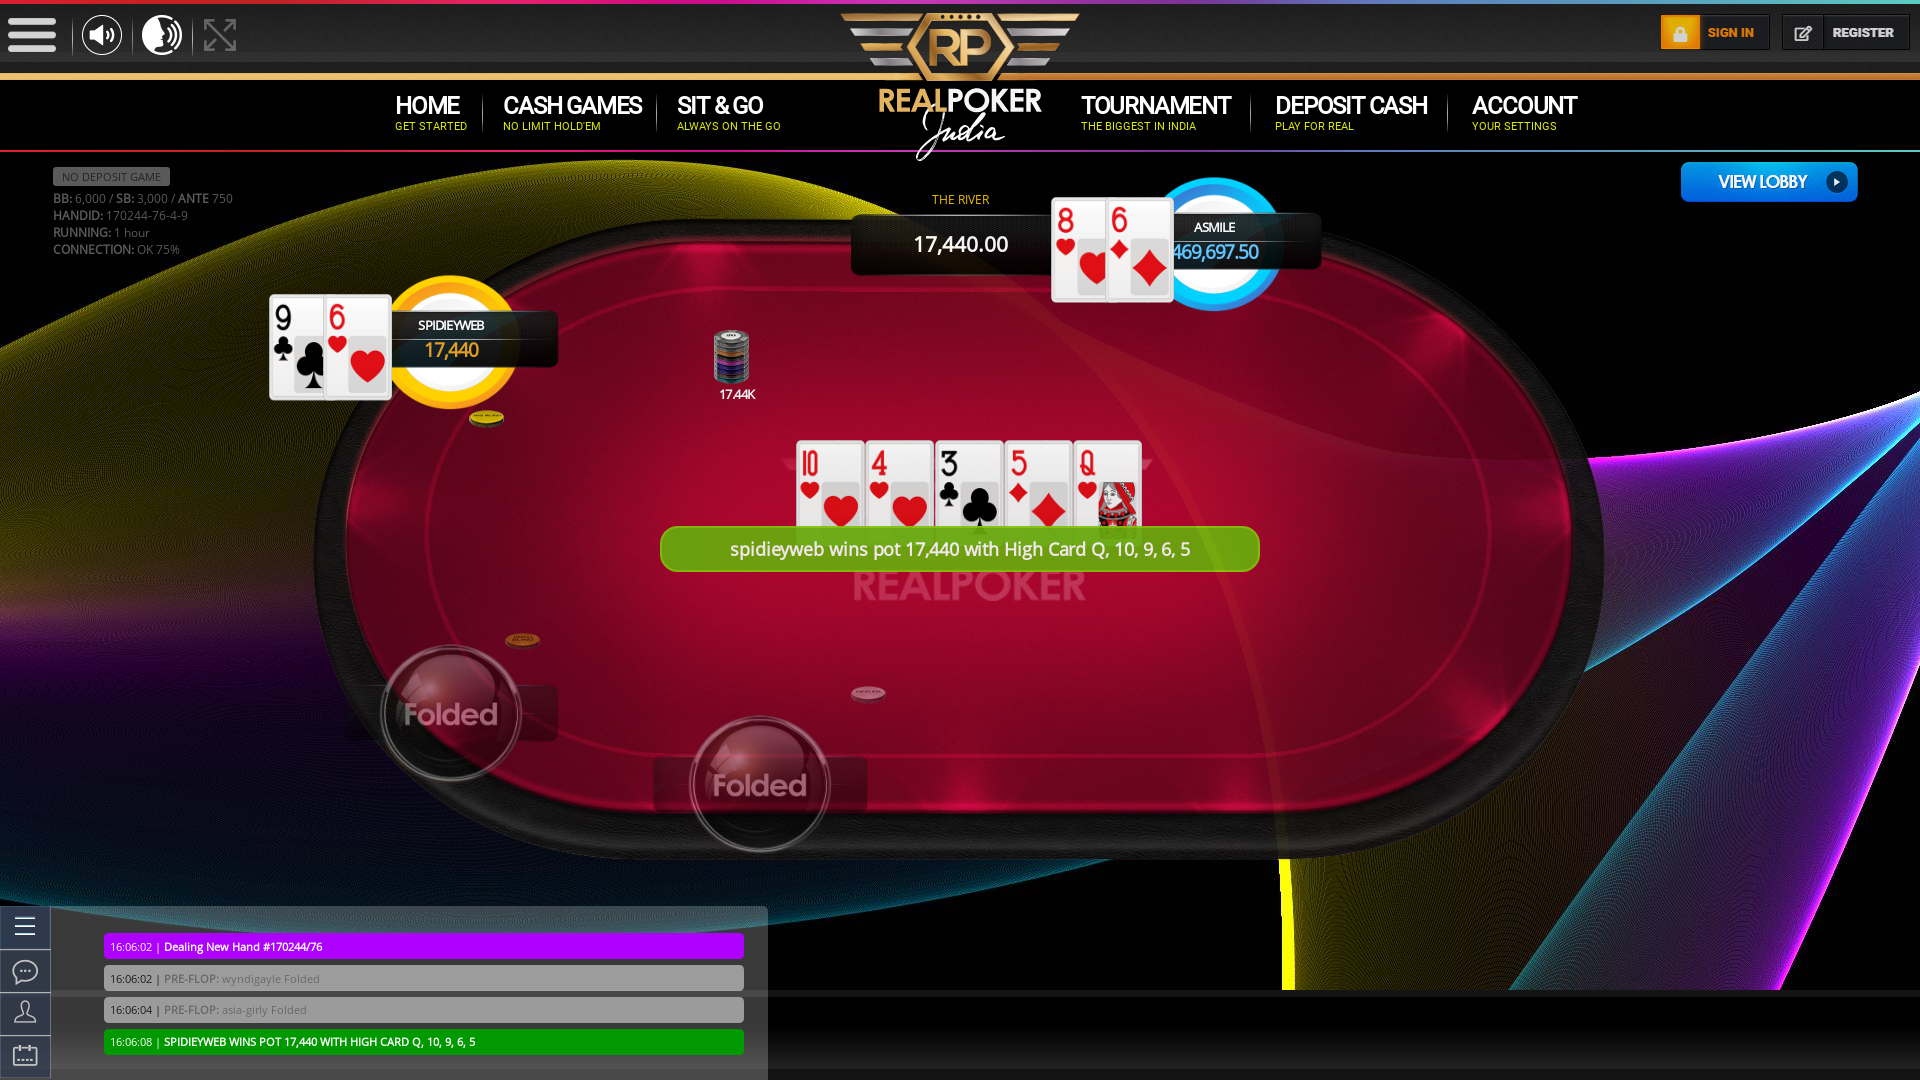 10 player texas holdem table at real poker with the table id 170244